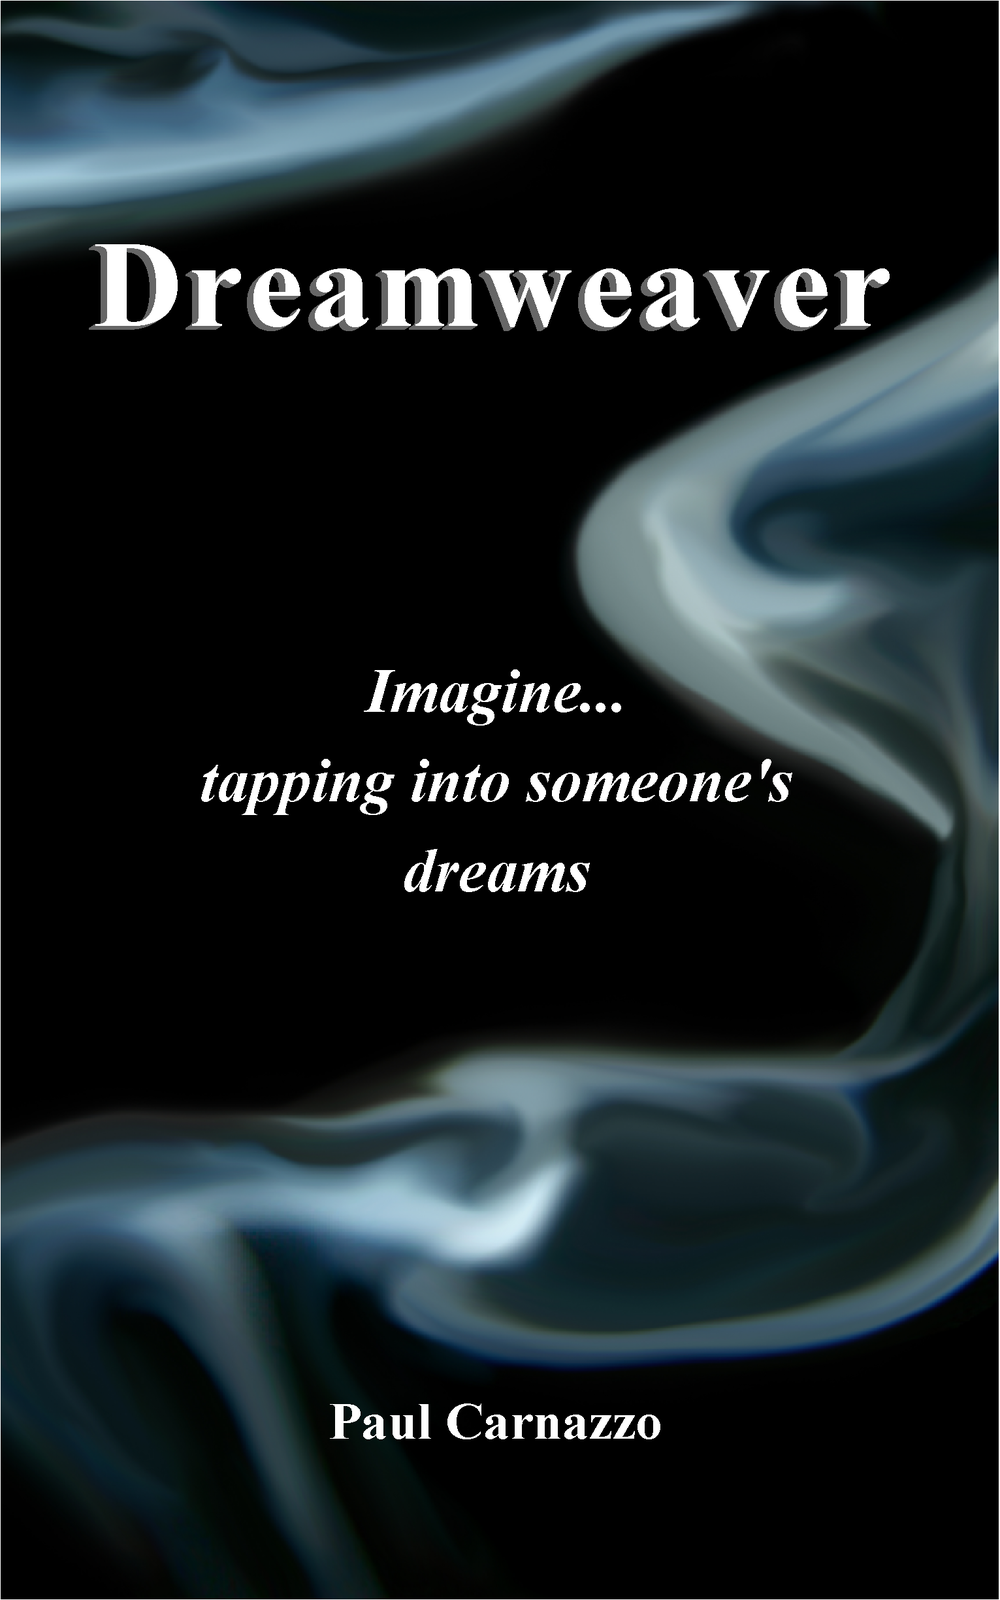 Thanks for purchasing Dreamweaver! - Click on the image to download the PDF